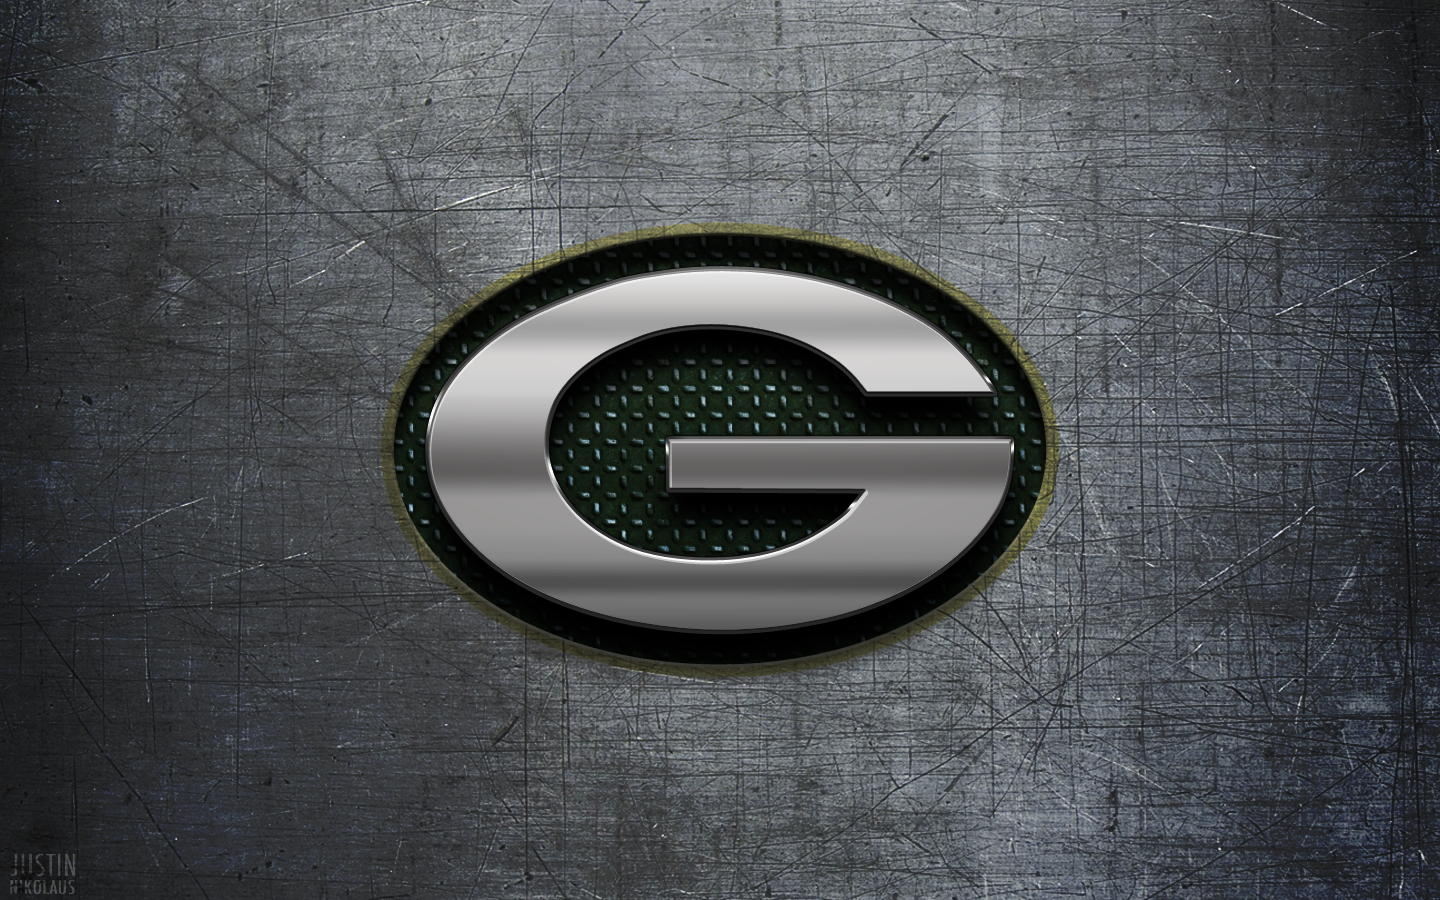 Green Bay Packers Wallpaper Metal Wall 365 Days of Design 1440x900